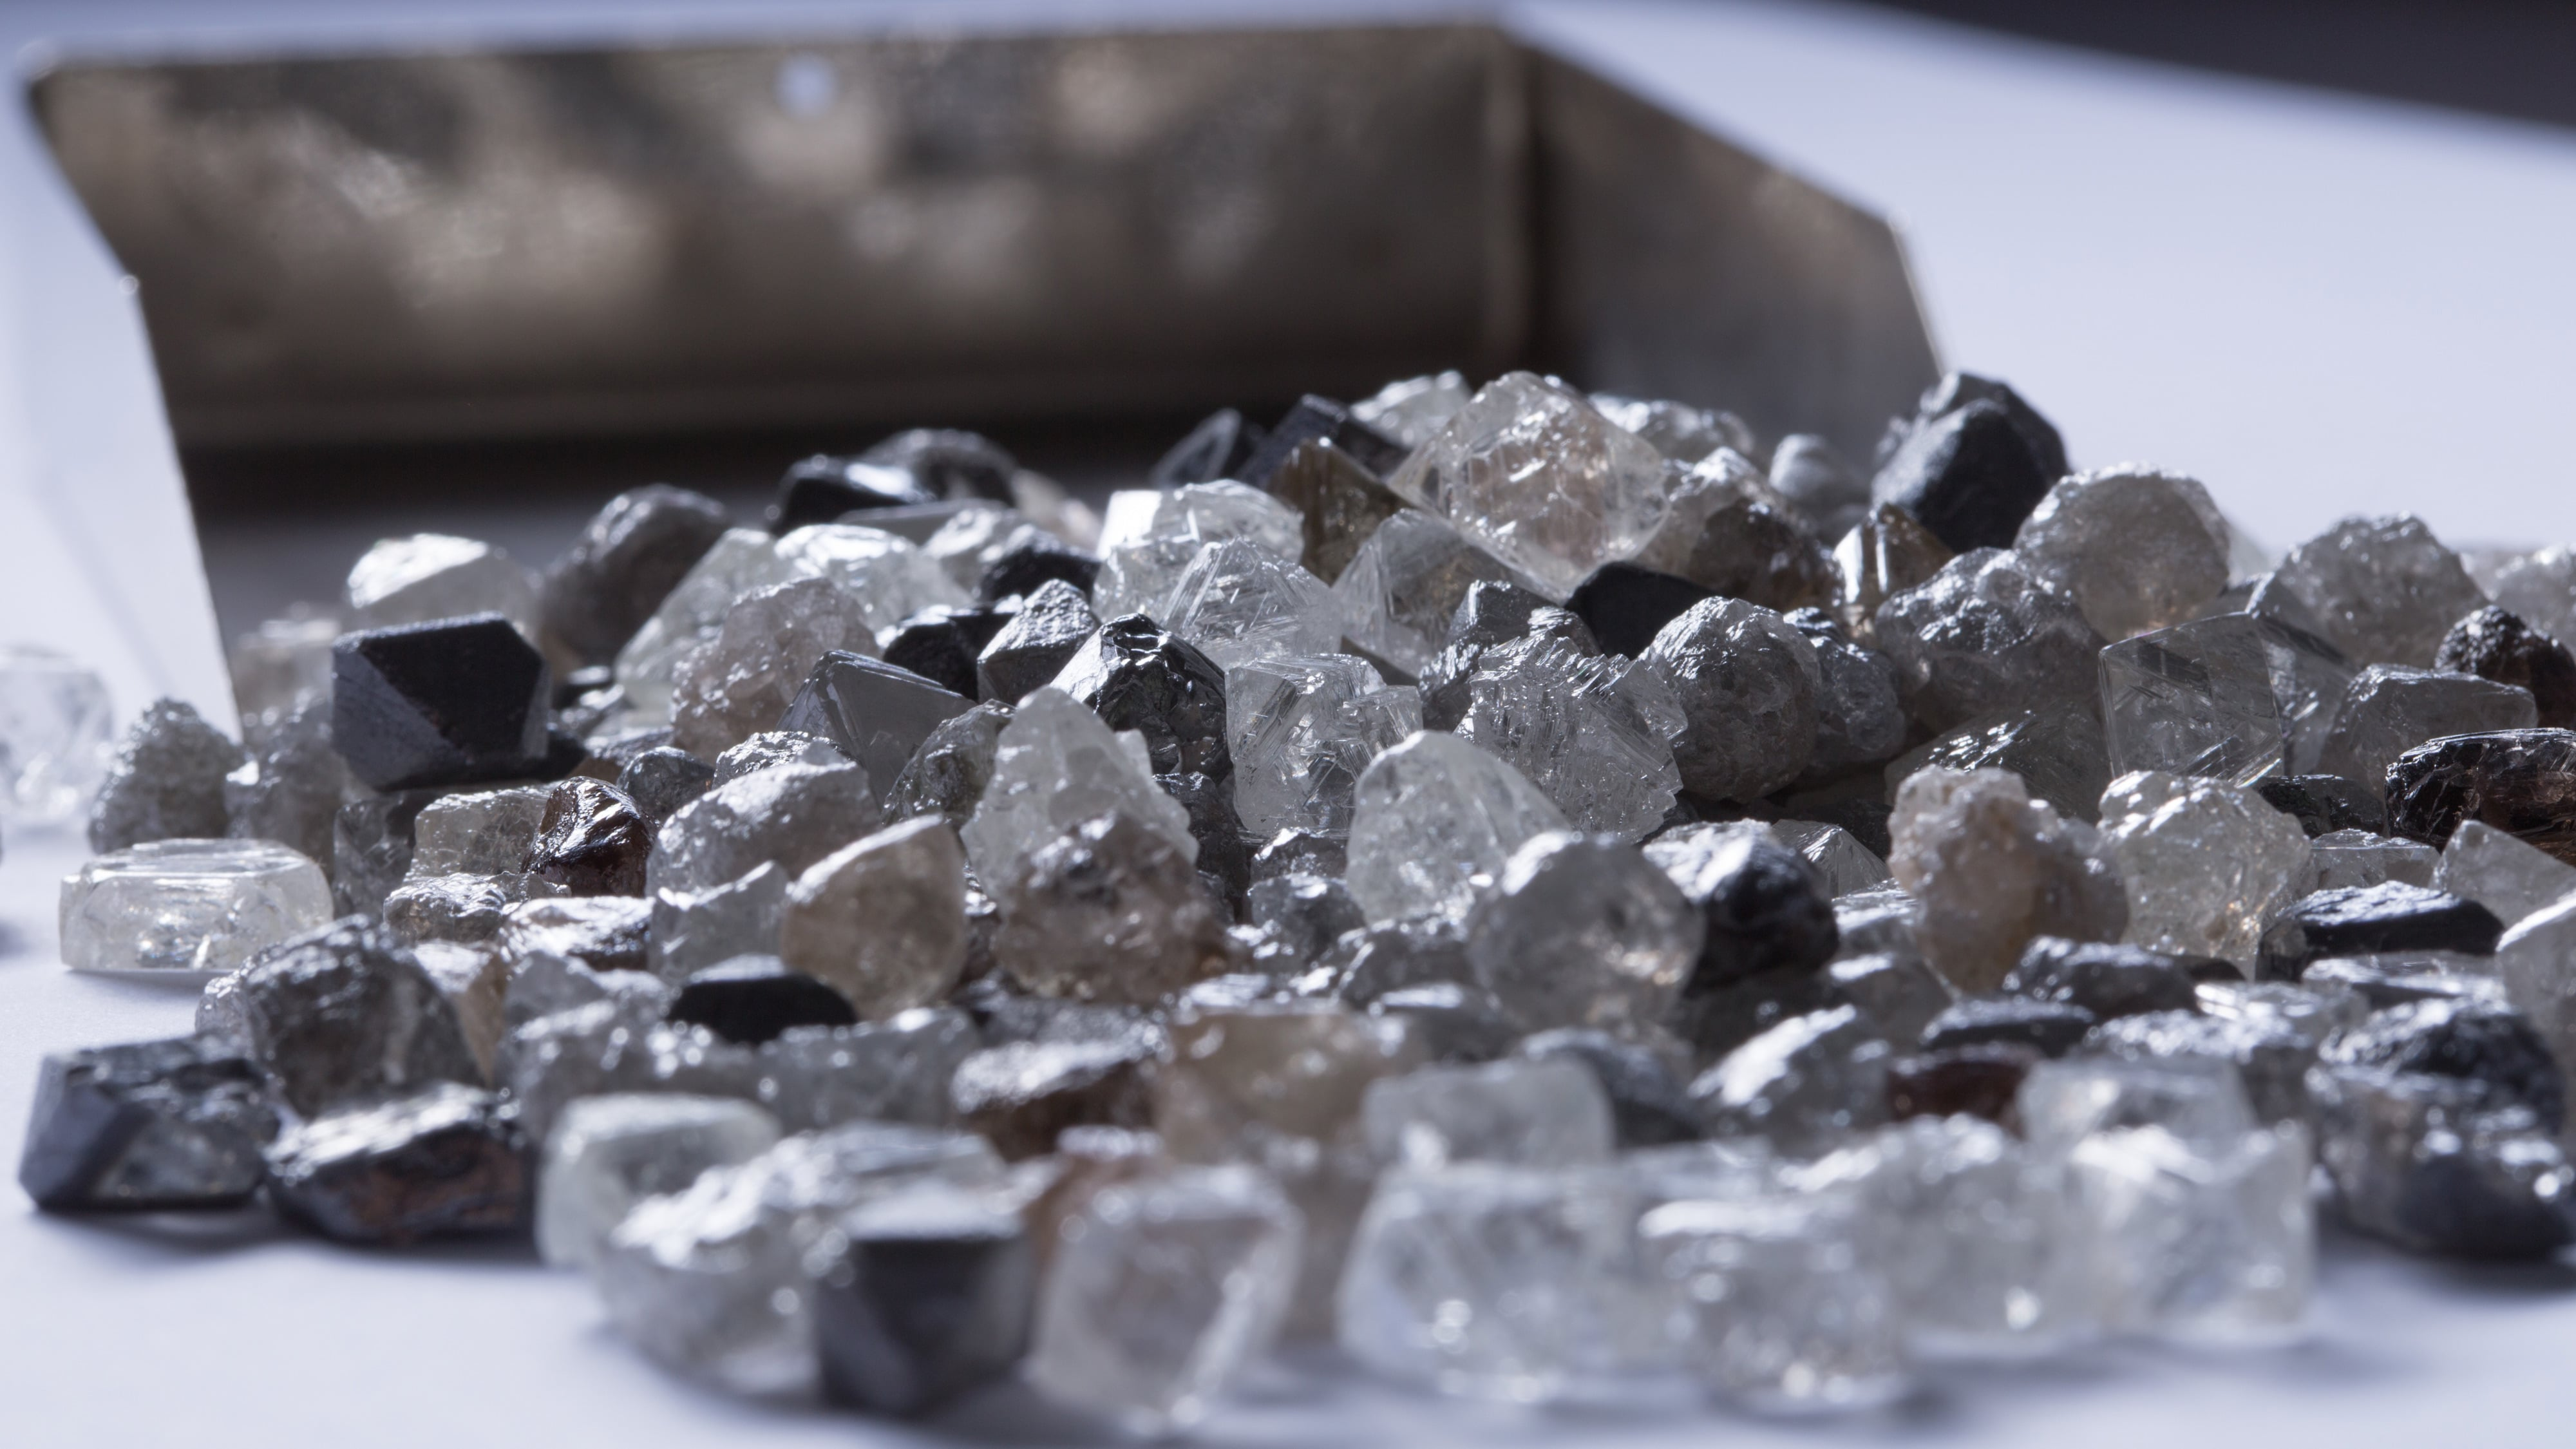 Diavik rough diamonds